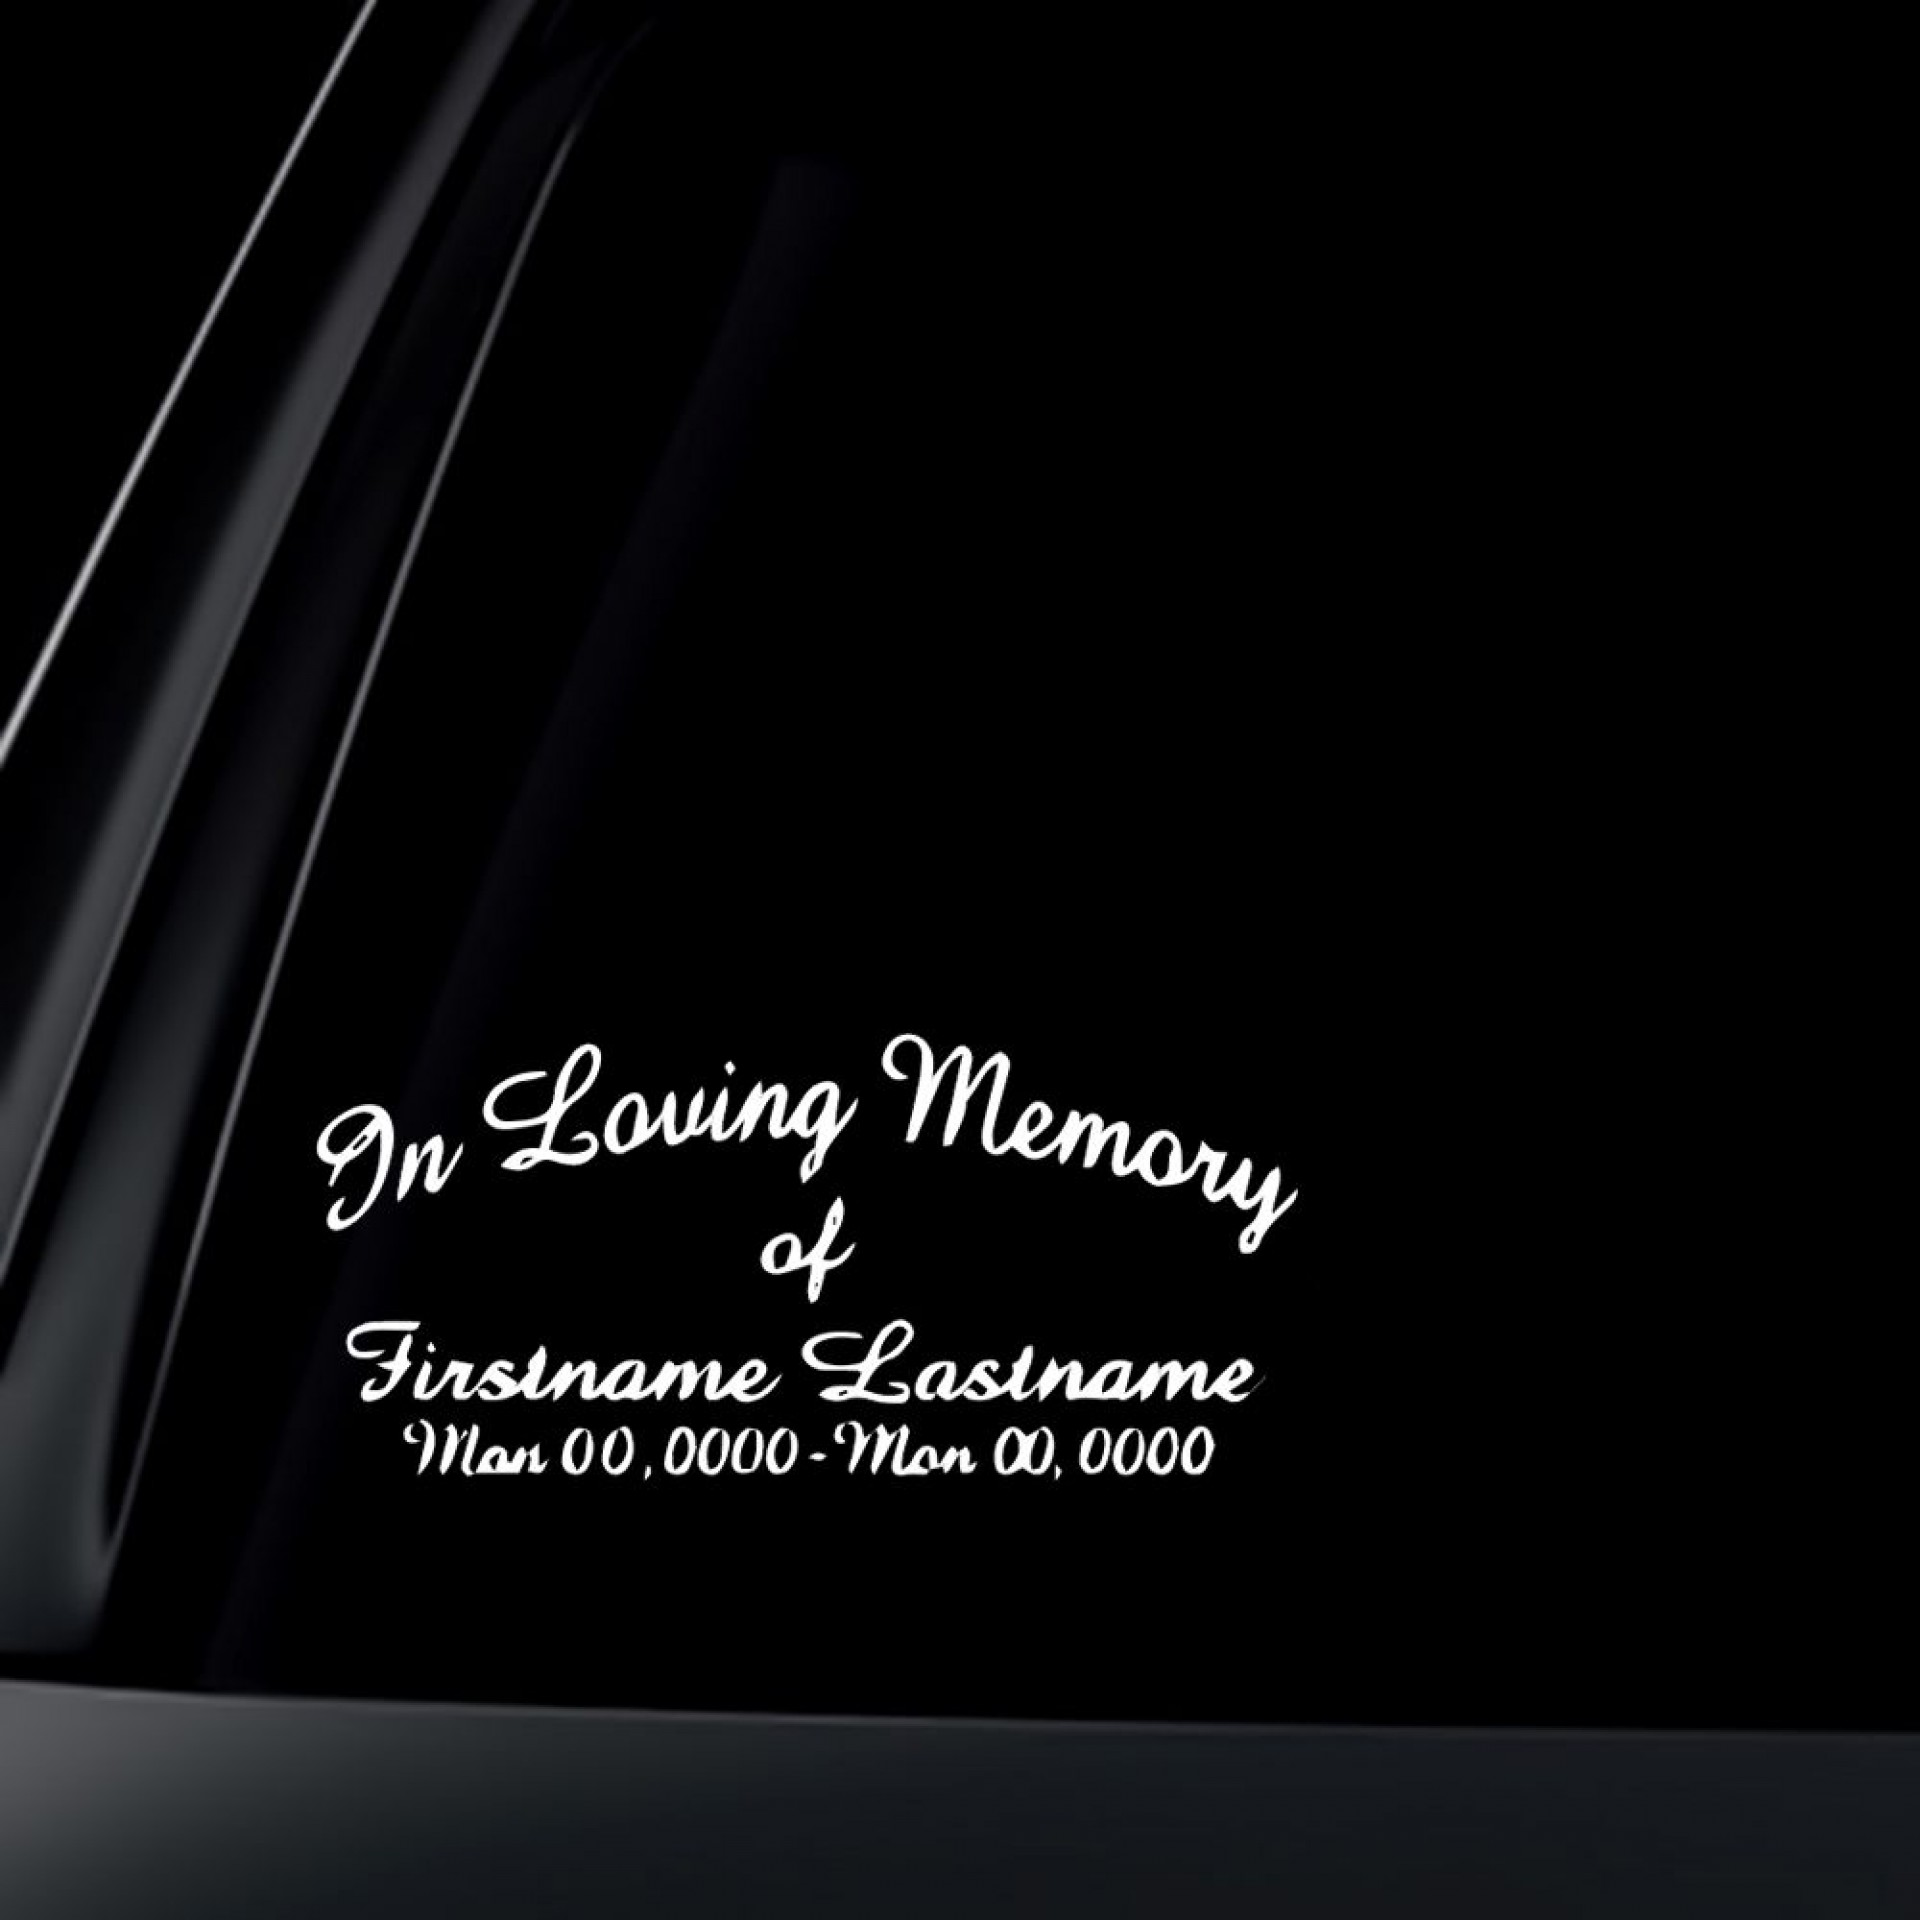 009 Stirring In Loving Memory Decal Template Example  Templates1920